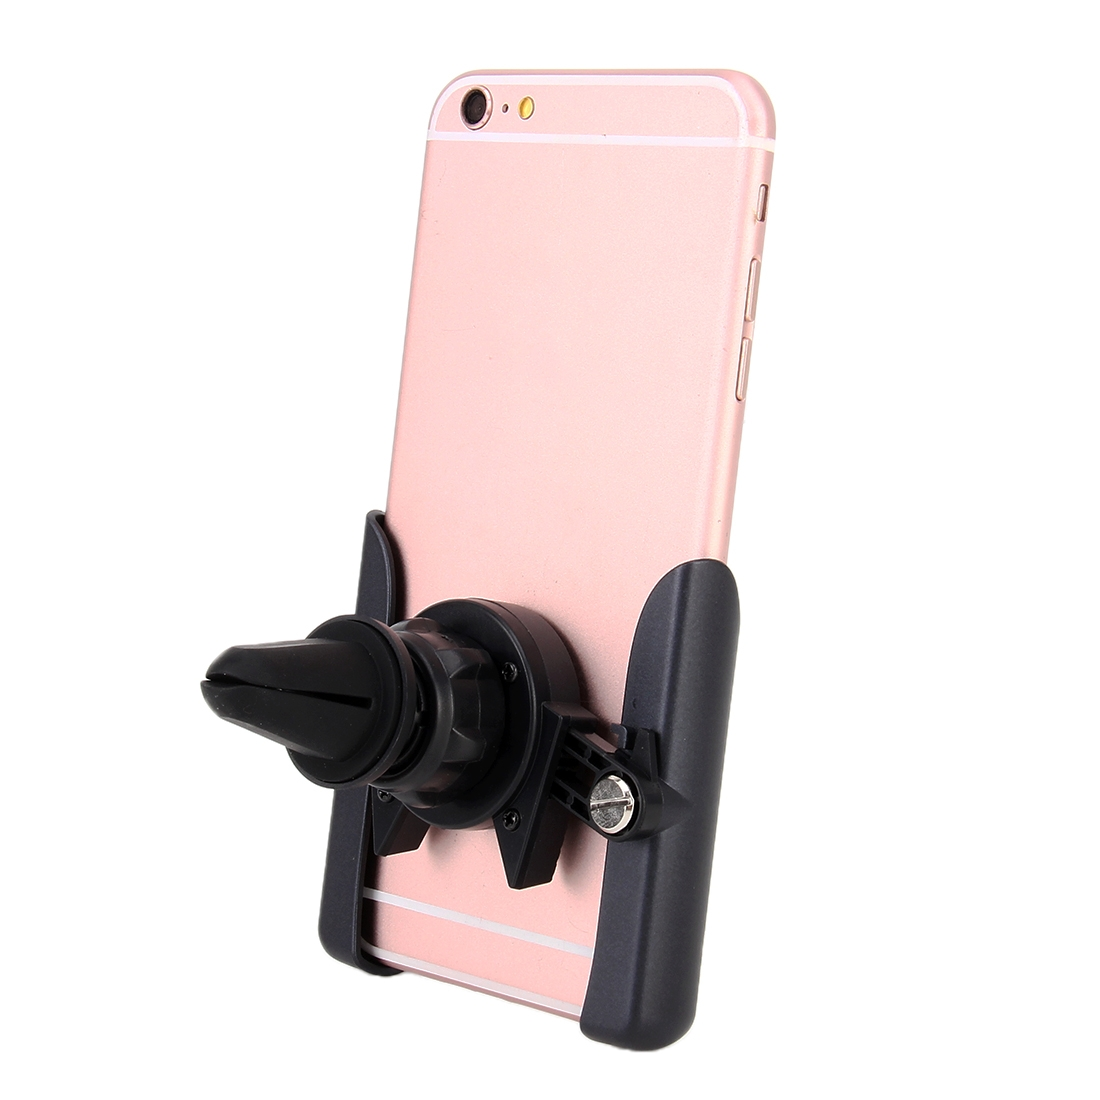 Universal Car Air Vent Mount Phone Holder Stand, Clip Width: 6-8.5cm, For iPhone, Galaxy, Sony, Lenovo, HTC, Huawei and other Smartphones (Red)